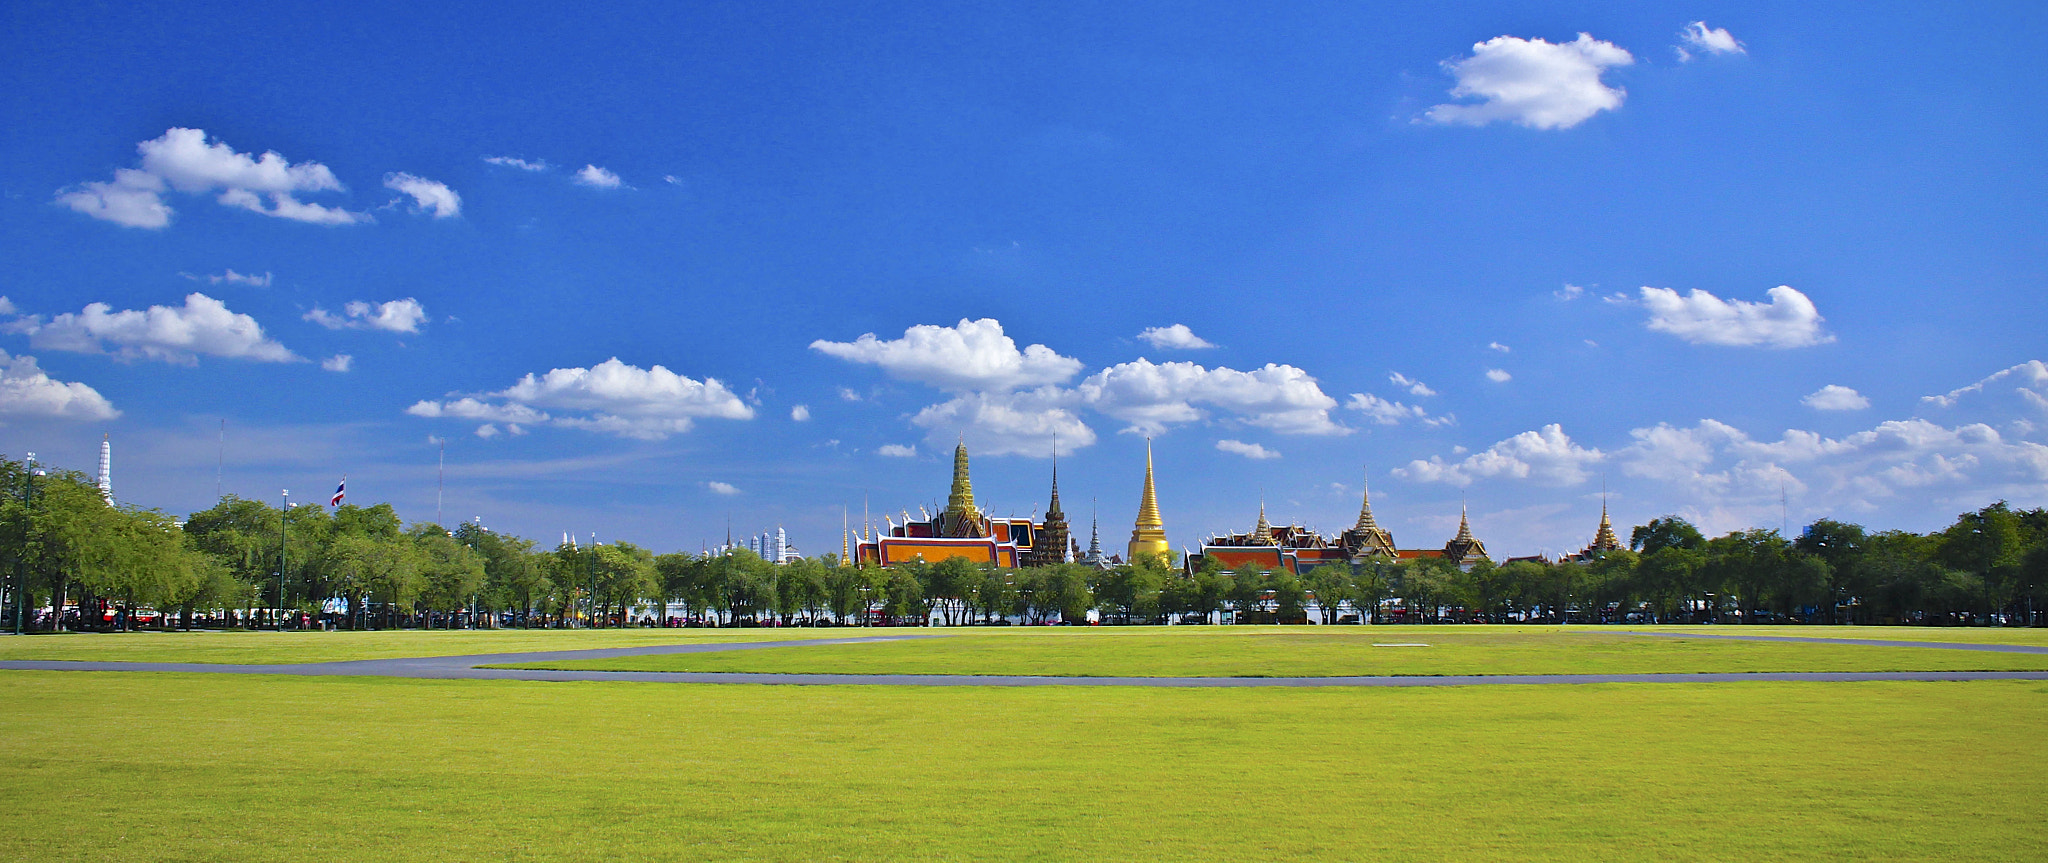 Photograph Capital of Thailand by Puniest Rojanapo on 500px